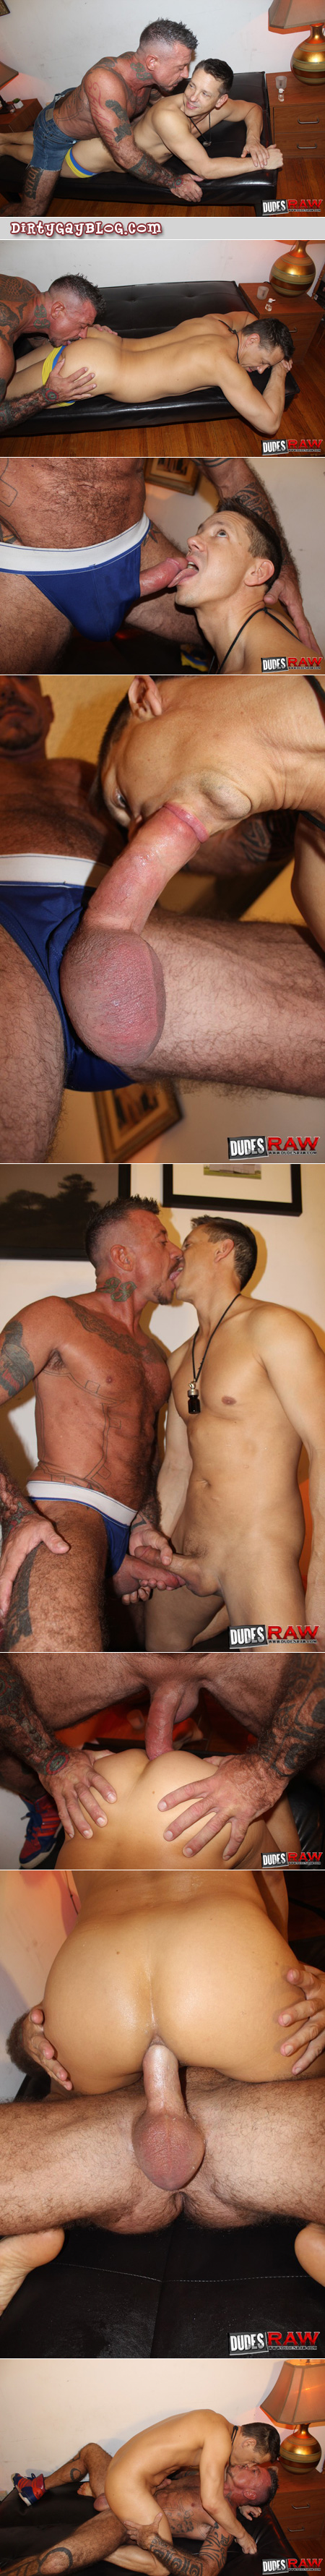 Heavily tattooed hairy muscle Daddy barebacking a younger man.